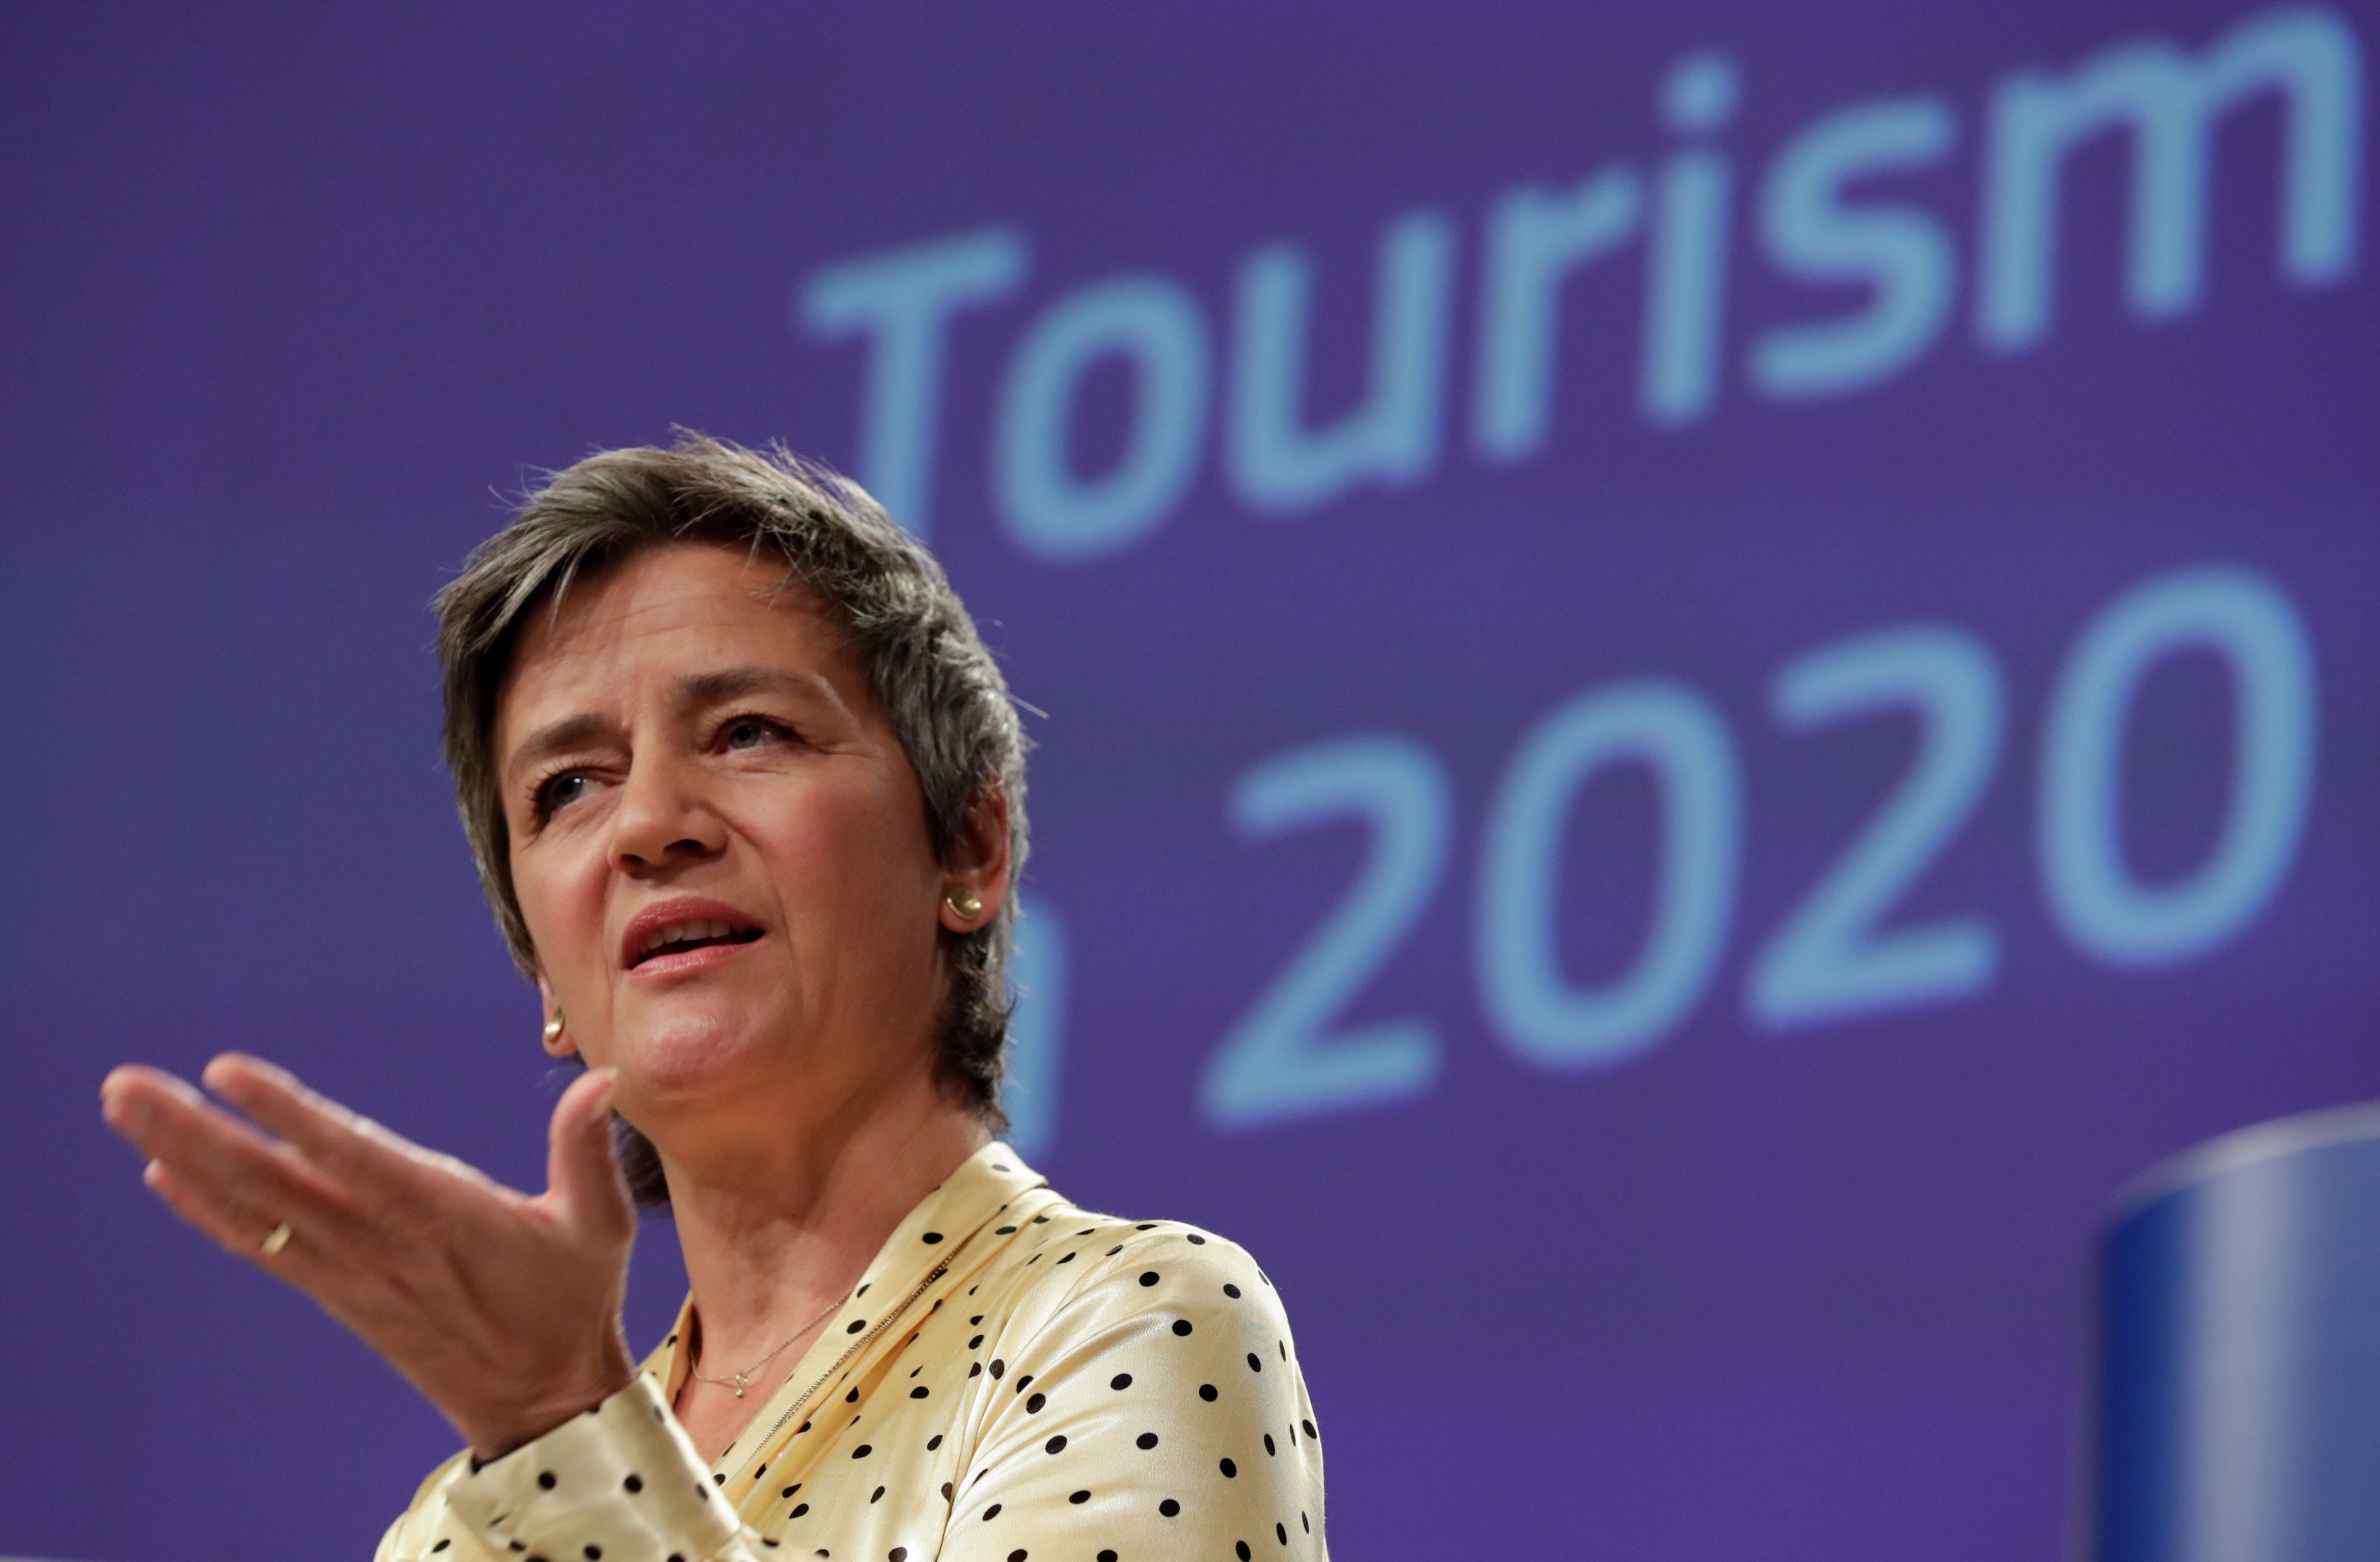 EU's Vestager: Discrepancy in state aid distorts single market, hampers recovery